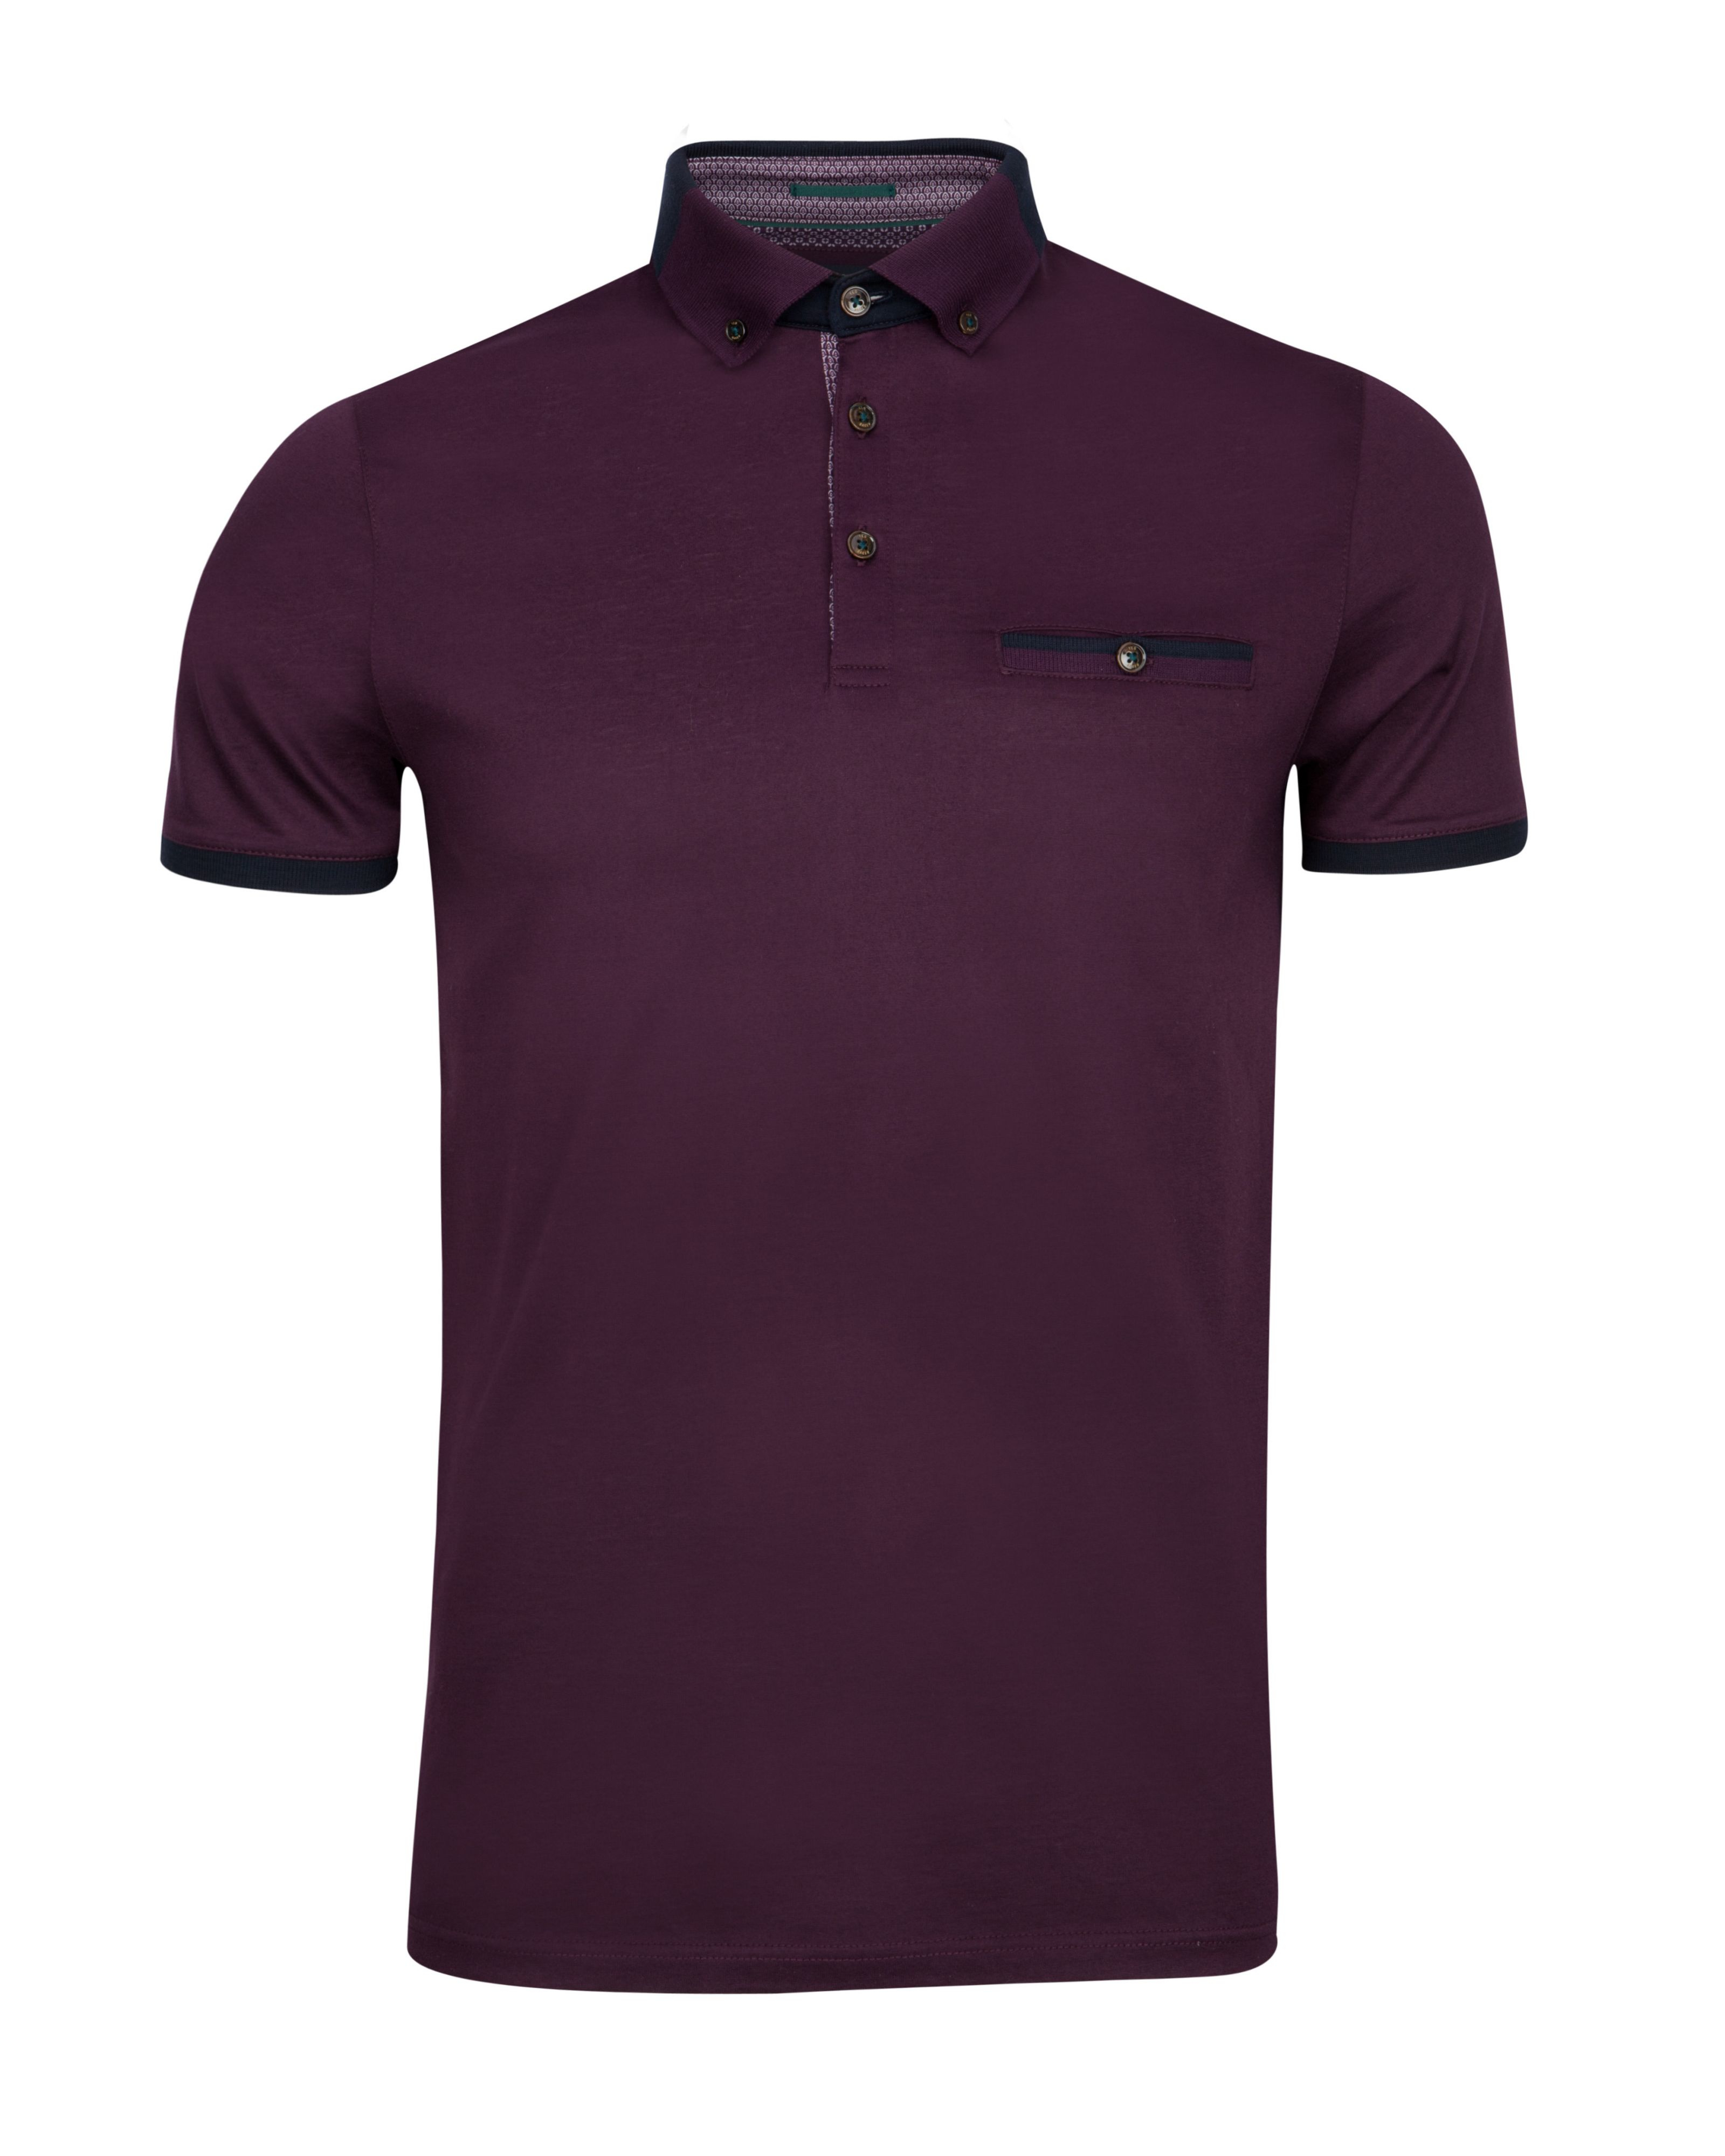 Ted baker eyebis colour block collar polo shirt in purple for Ted baker mens polo shirts